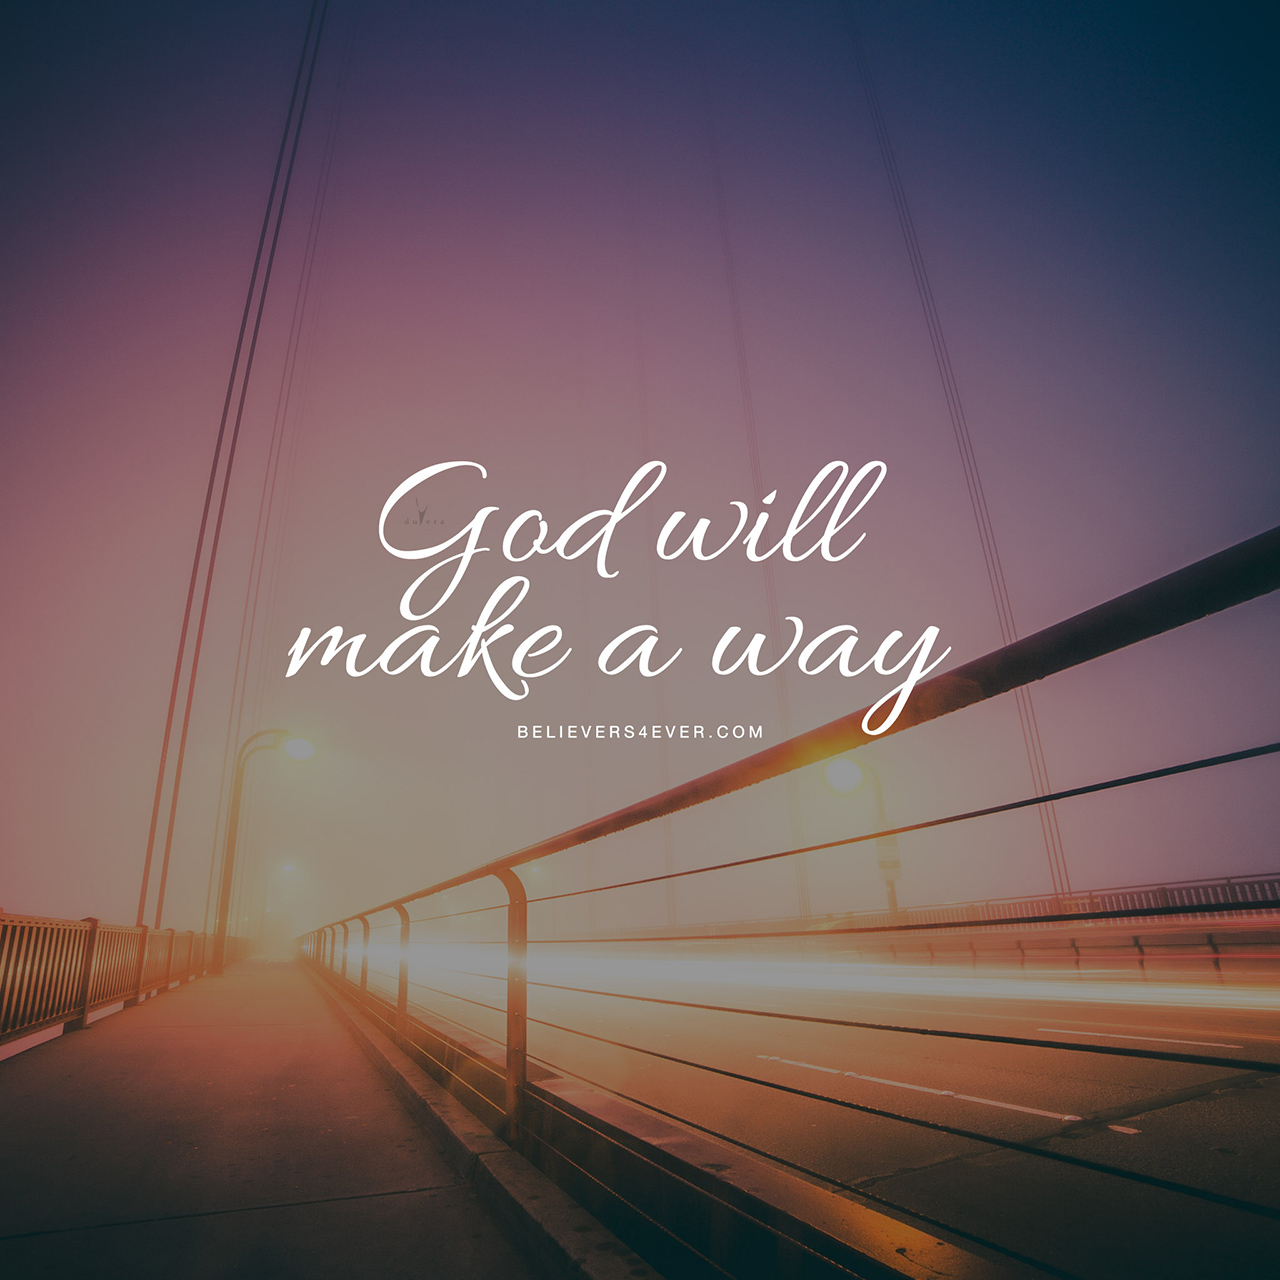 God will make a way ipad wallpaper